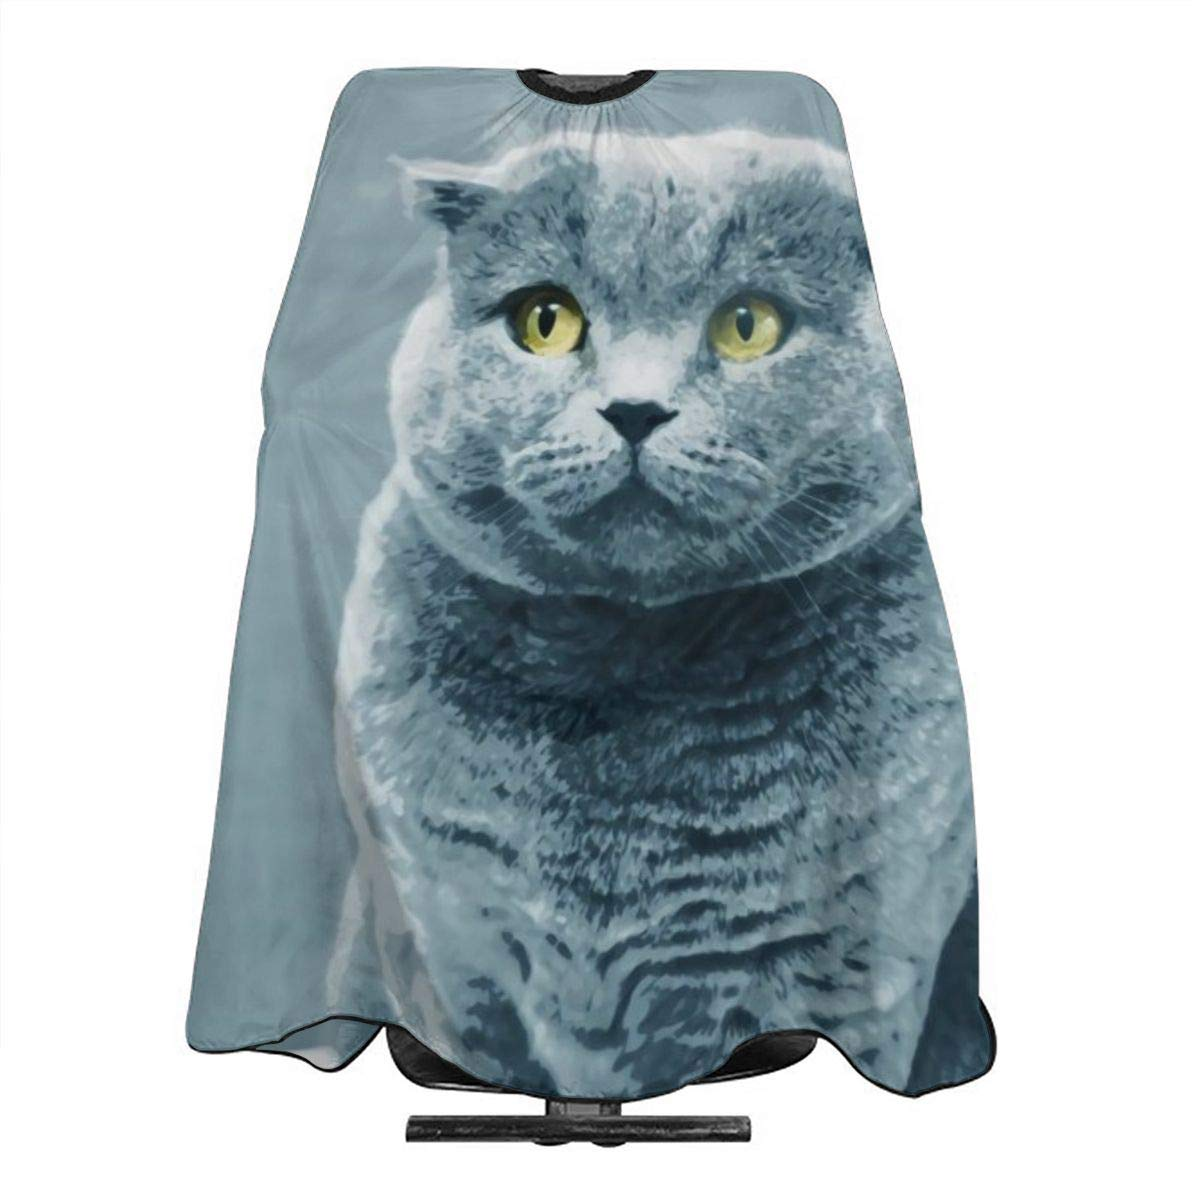 Professional Barber Cape Salon Hair Styling Cutting Haircut Aprons GREY CAT Capes For Proof Hairdresser Coloring Perming Shampoo Chemical 55